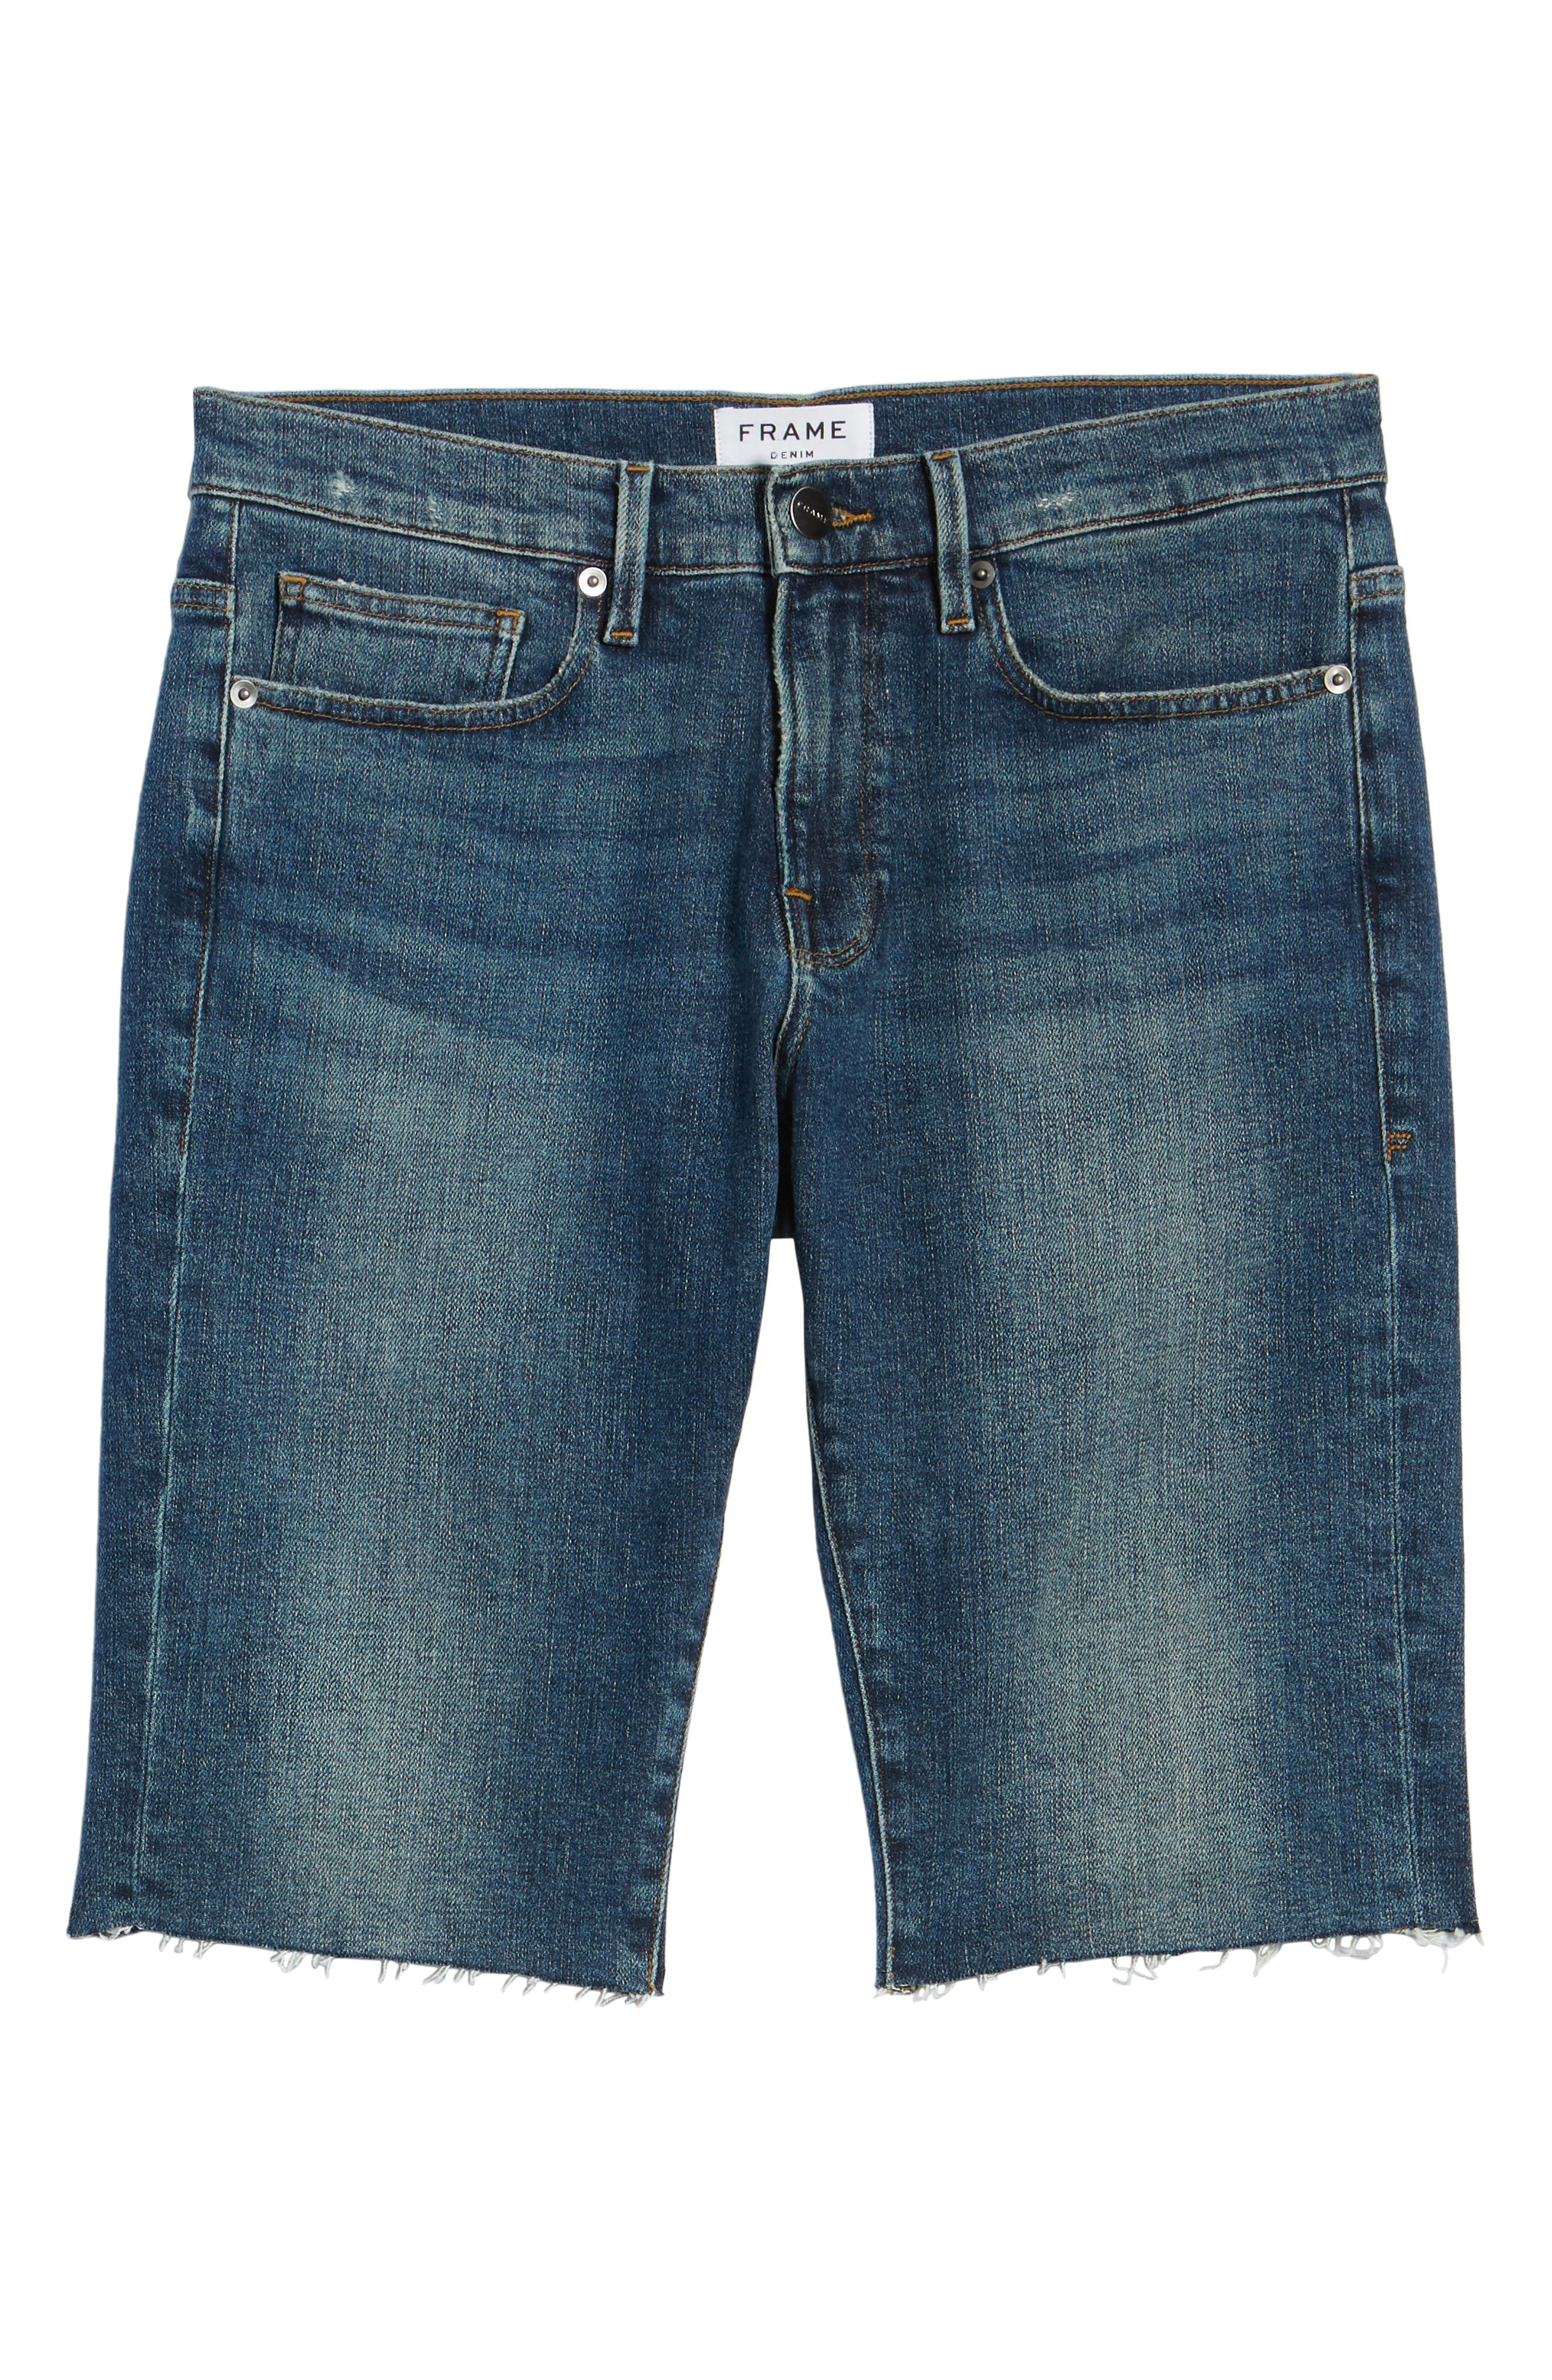 L'Homme Cutoff Shorts,                             Alternate thumbnail 6, color,                             KIRBY